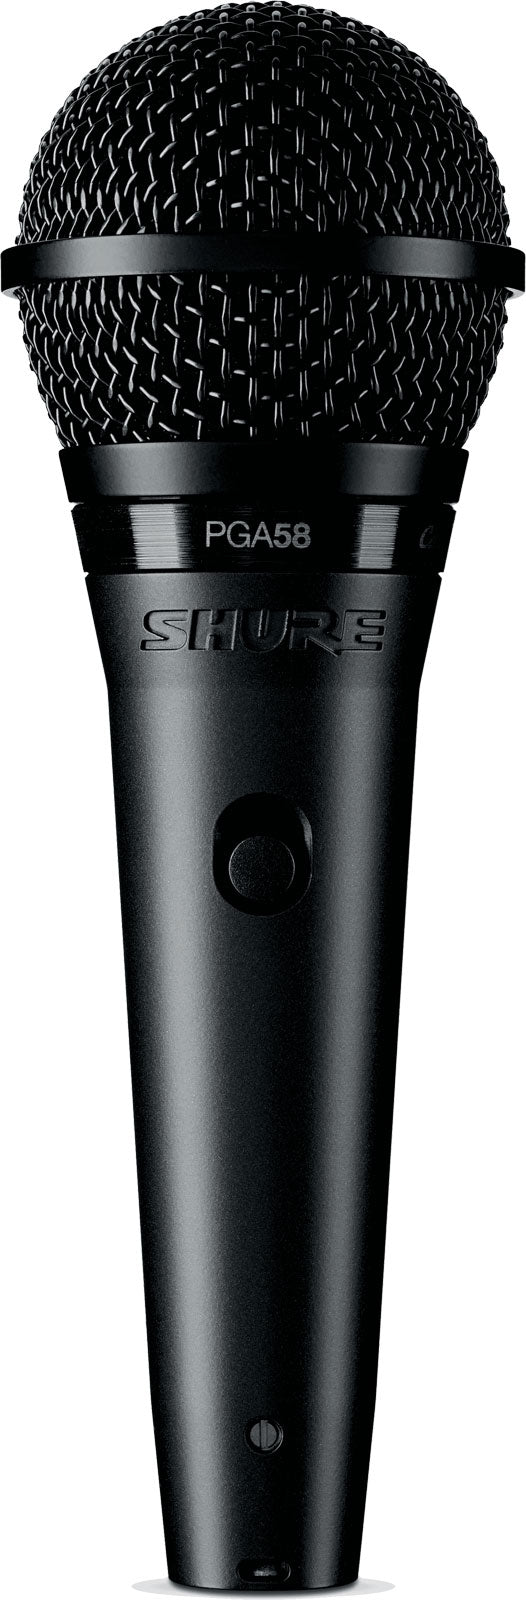 Shure microphone,, image 1